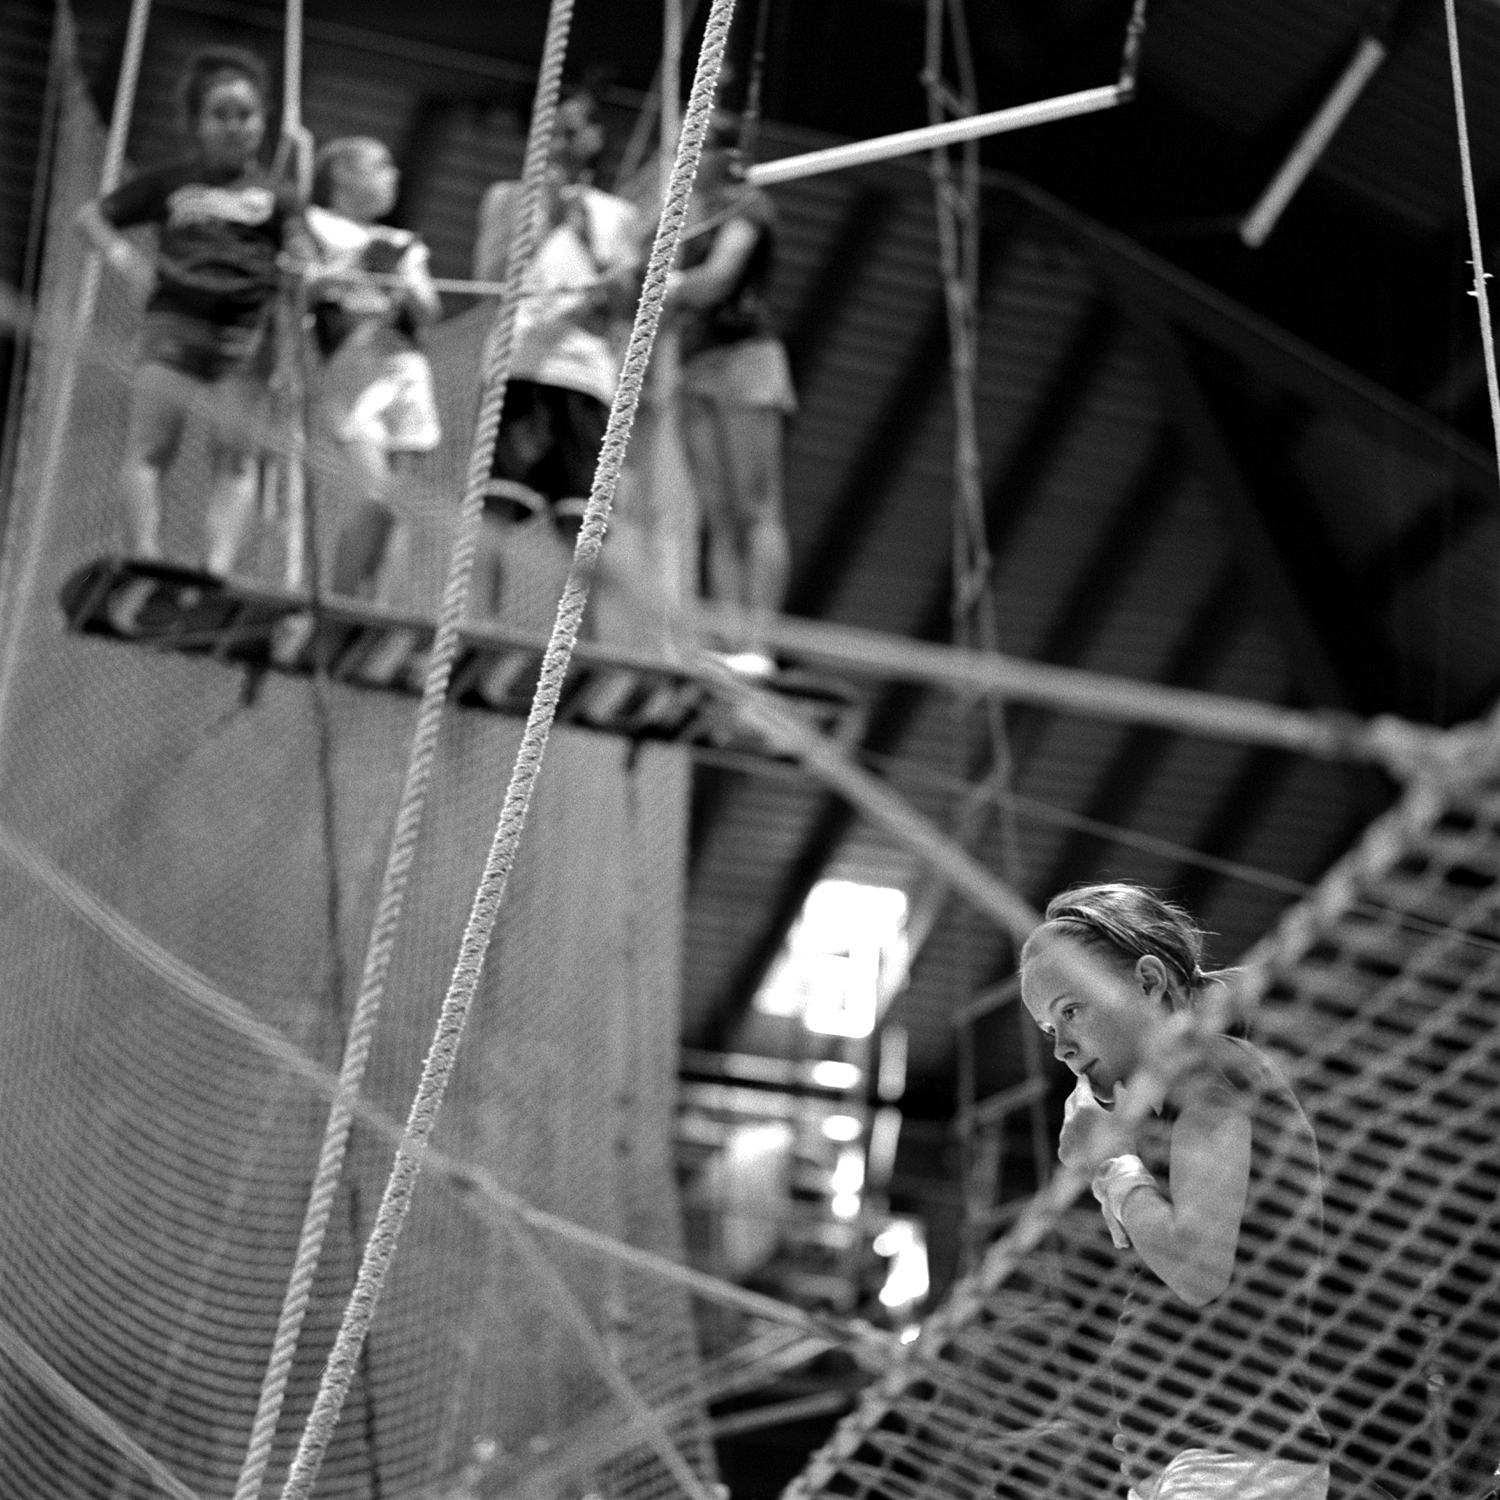 Josie Murphy, 13, ponders advice from her trainer on the flying trapeze while others await their turn to practice. For the most challenging acts, performers are selected earl, based on their potential and suitability.